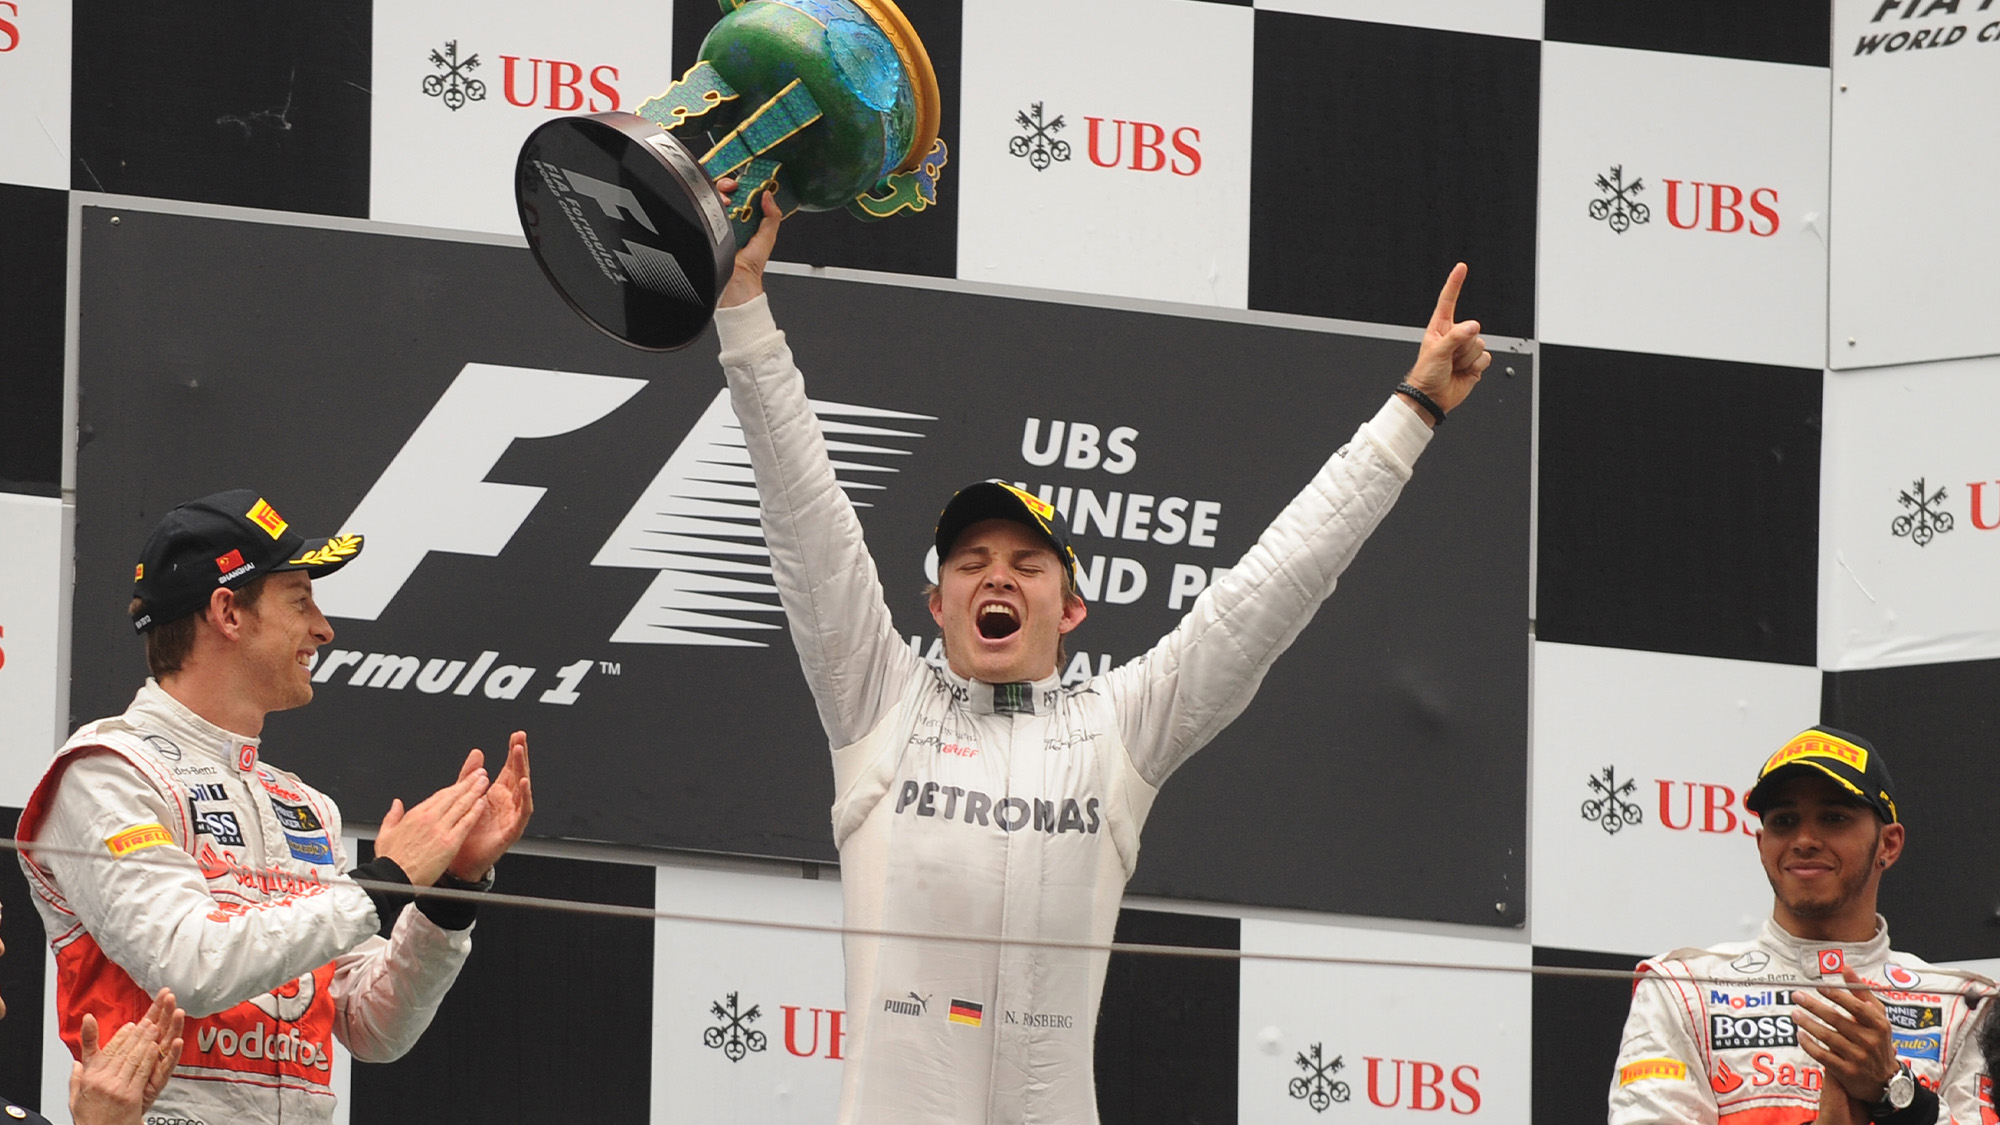 Nico Rosberg celebrates winning the Chinese Grand Prix with Jenson Button and Lewis Hamilton on the podium